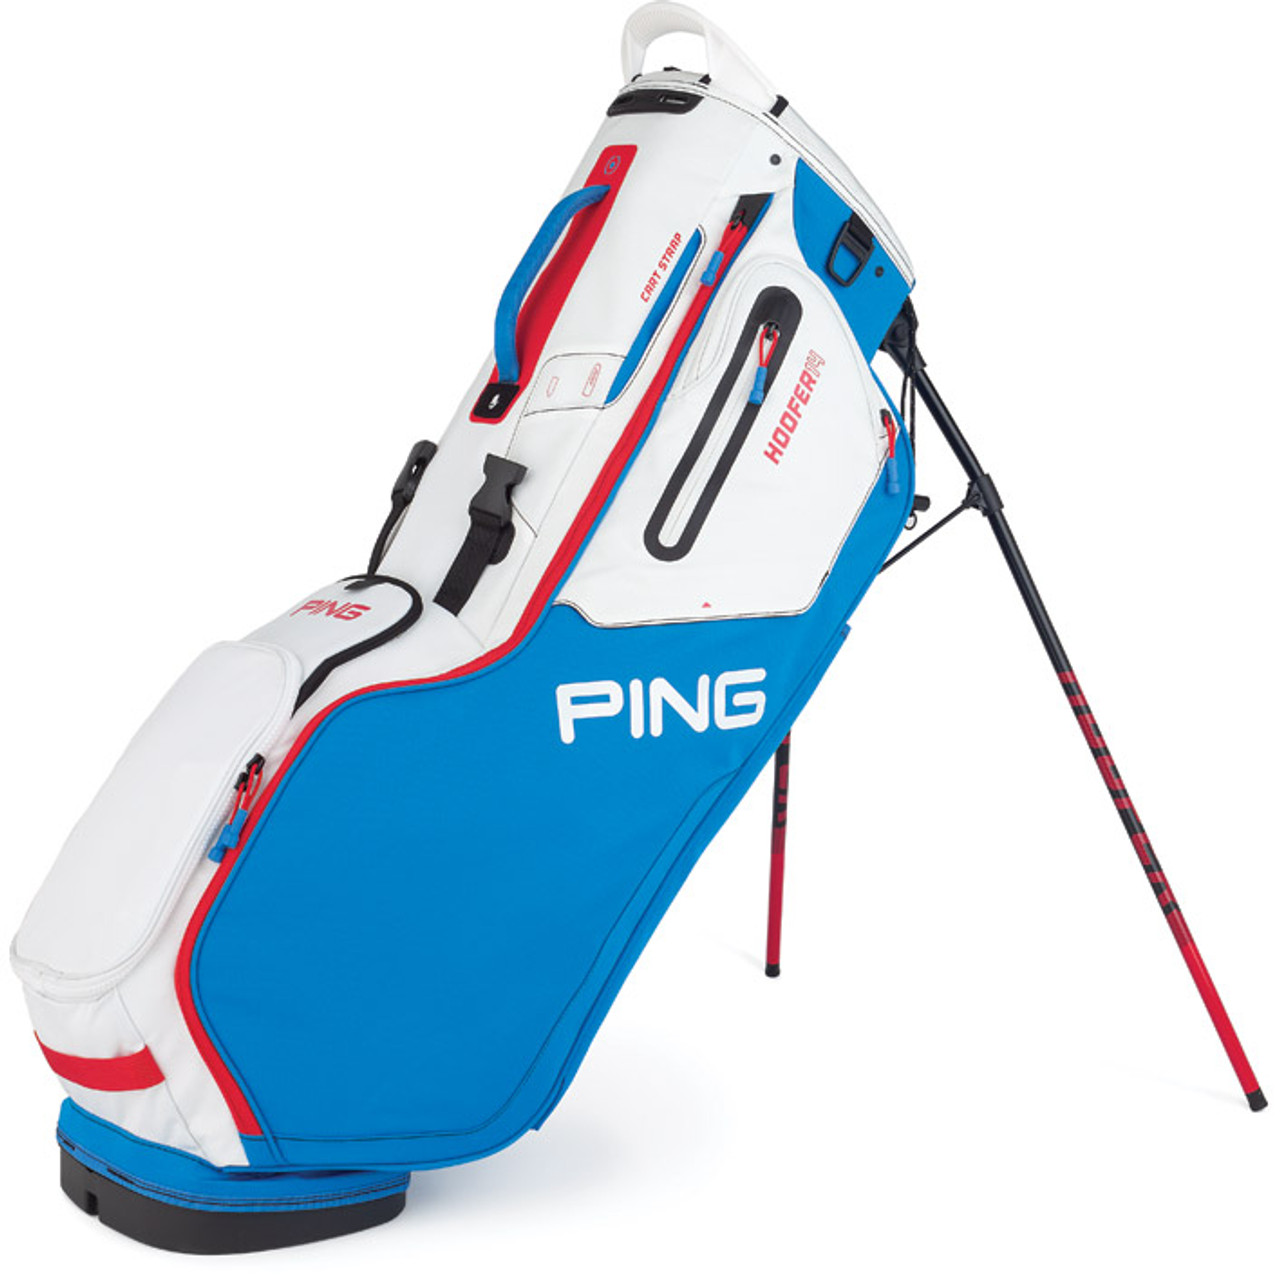 Ping Hoofer 14 Personalized Stand Bags - Bright Blue / White / Scarlet